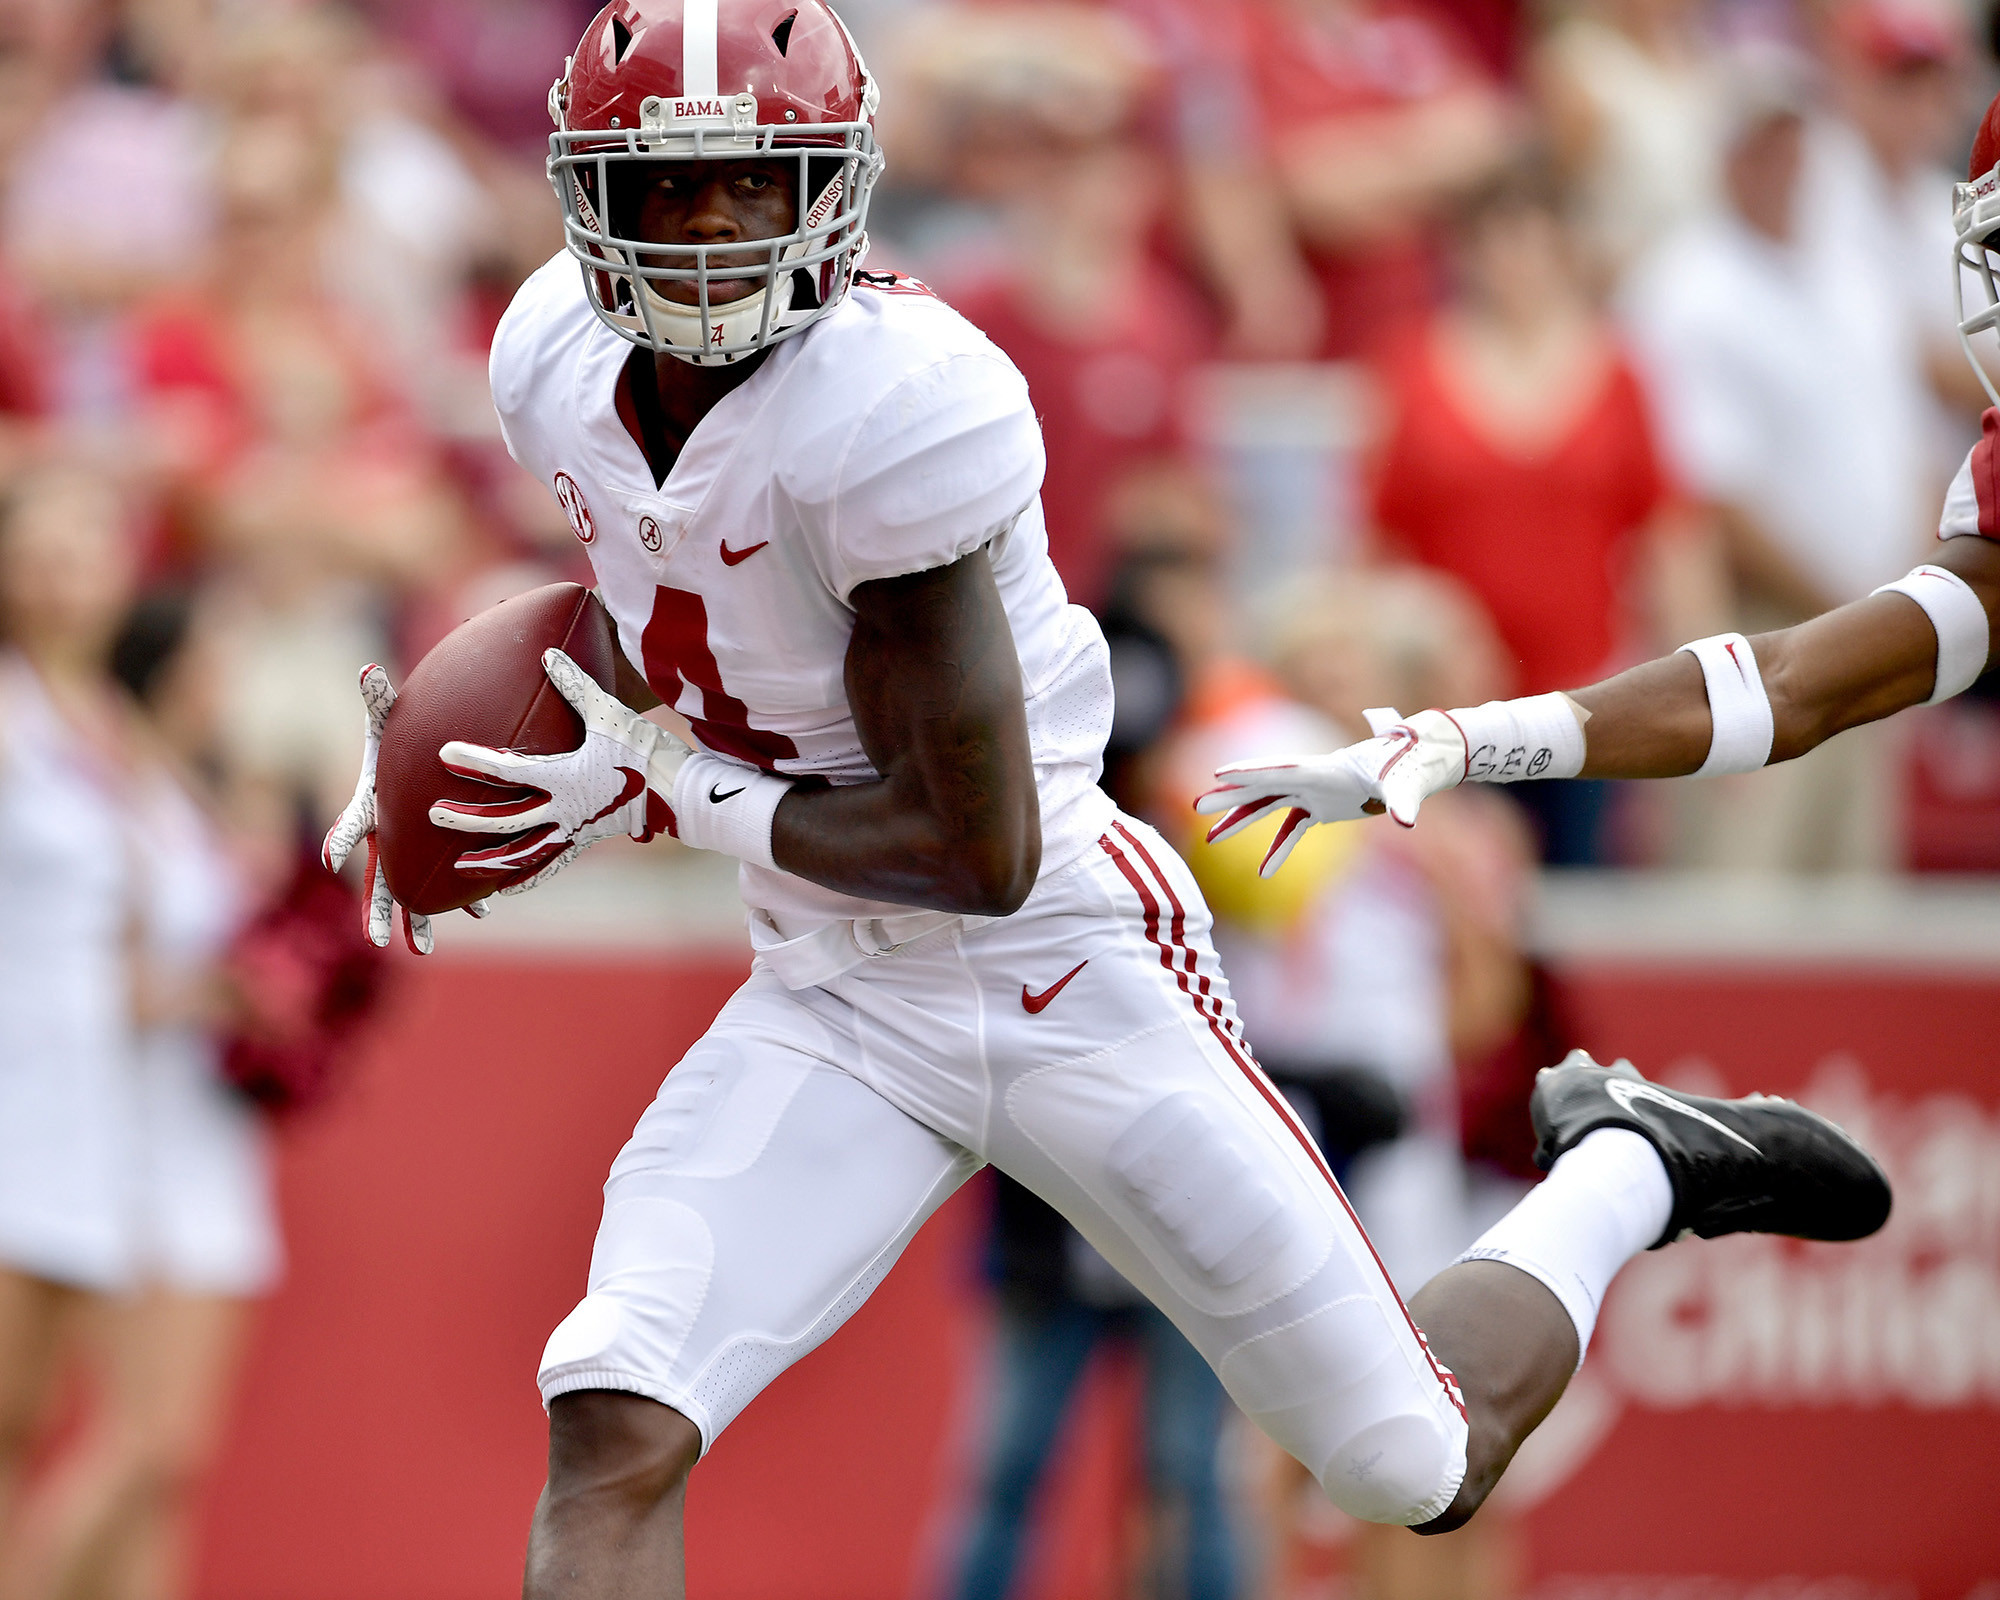 Alabama Crimson Tide wide receiver Jerry Jeudy (4) with a catch and a touchdown in the first half of the NCAA football game against the Arkansas Razorbacks at Razorback Stadium on Oct. 6, 2018, in Fayetteville, Ark. Alabama defeated Arkansas 65-31. (Photo by Lee Walls)